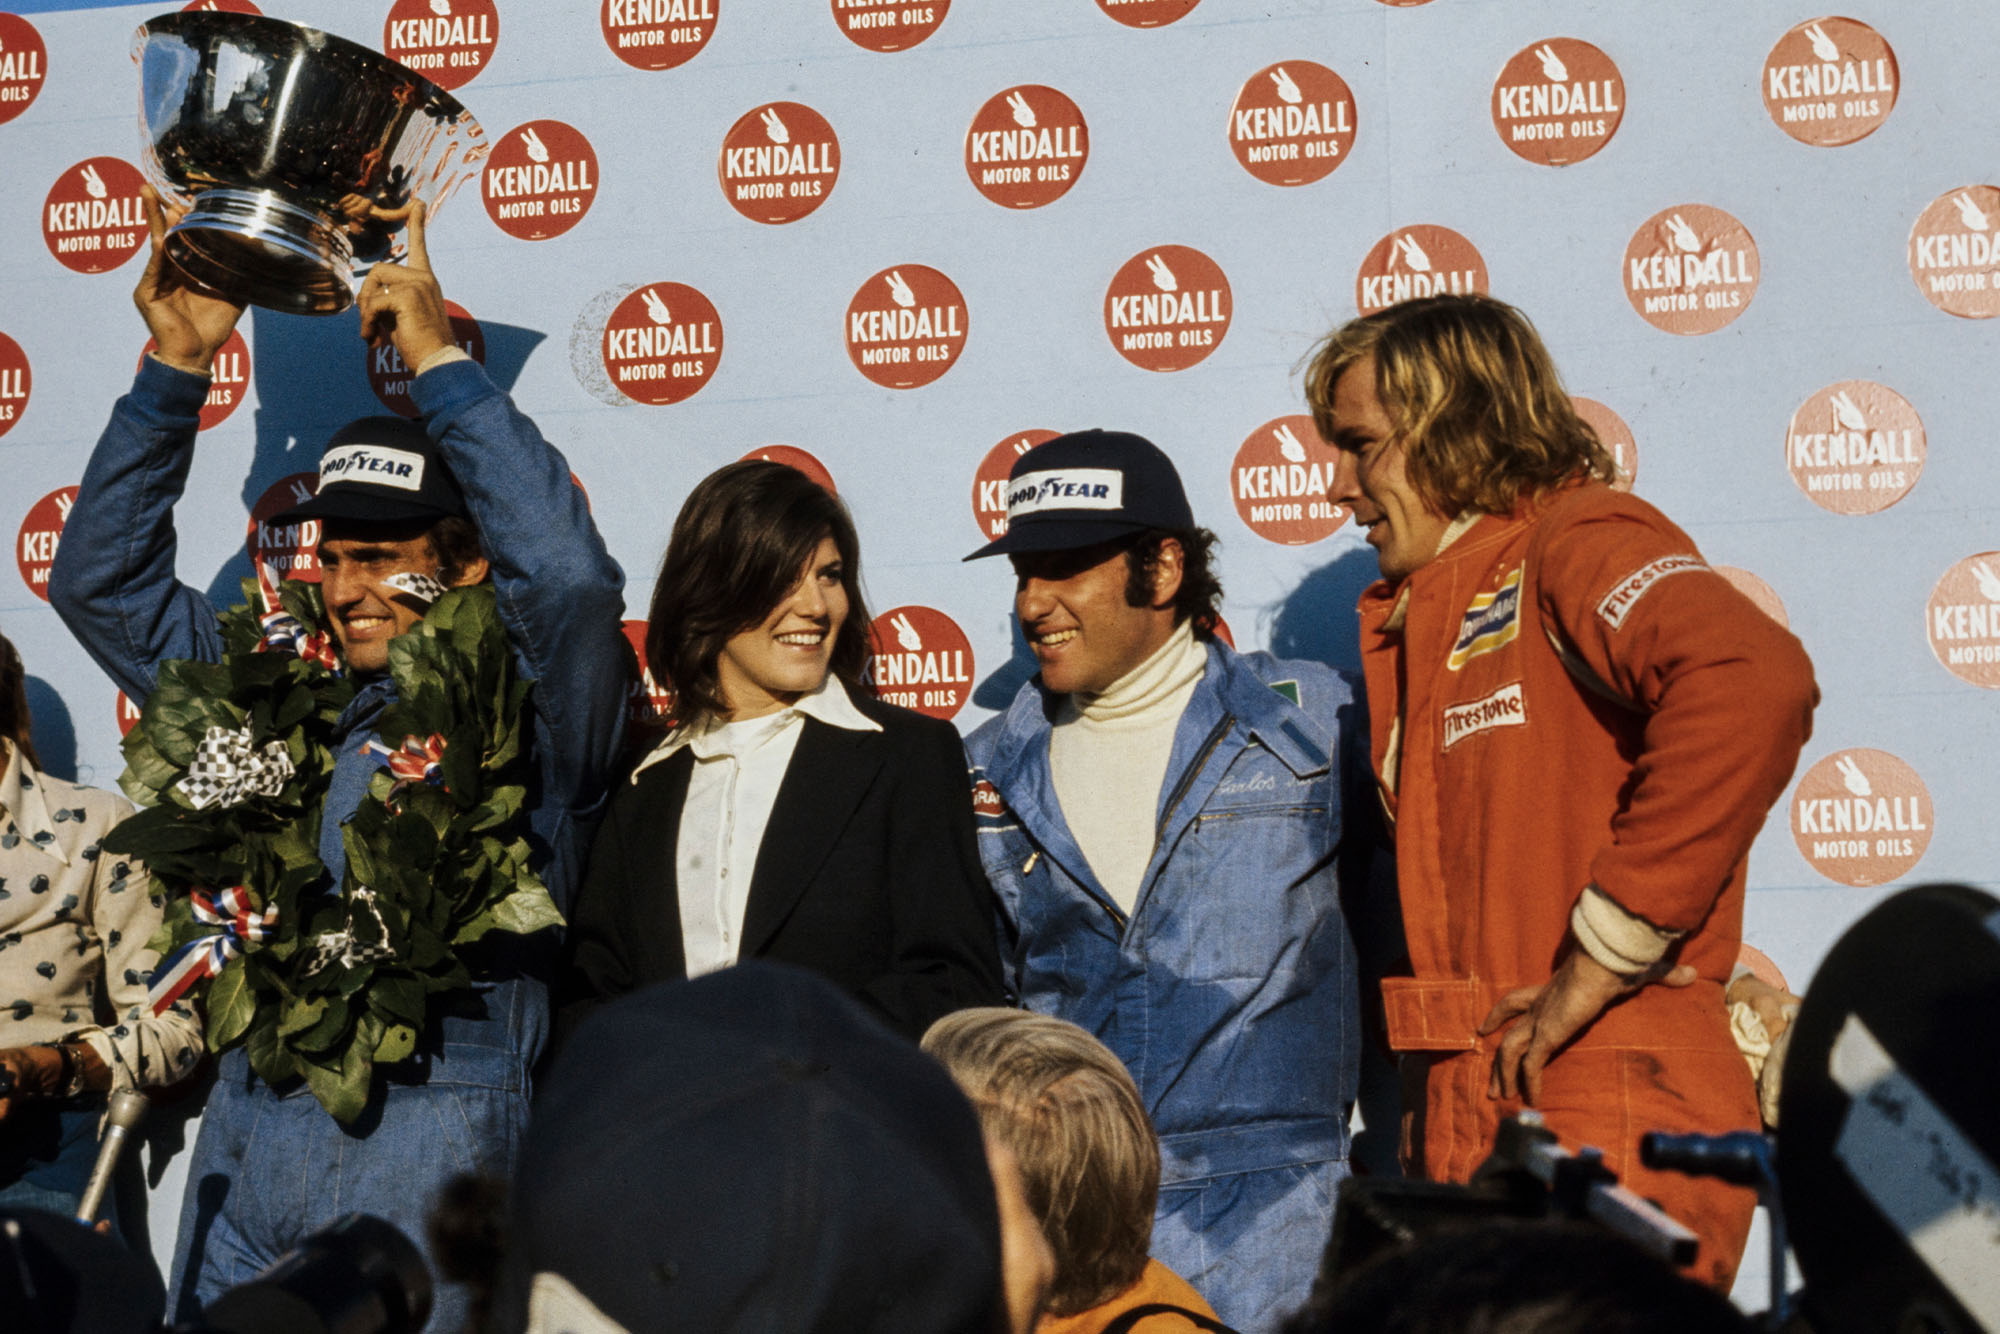 Carlos Reutemann (Brabham) celebrates on the podium.